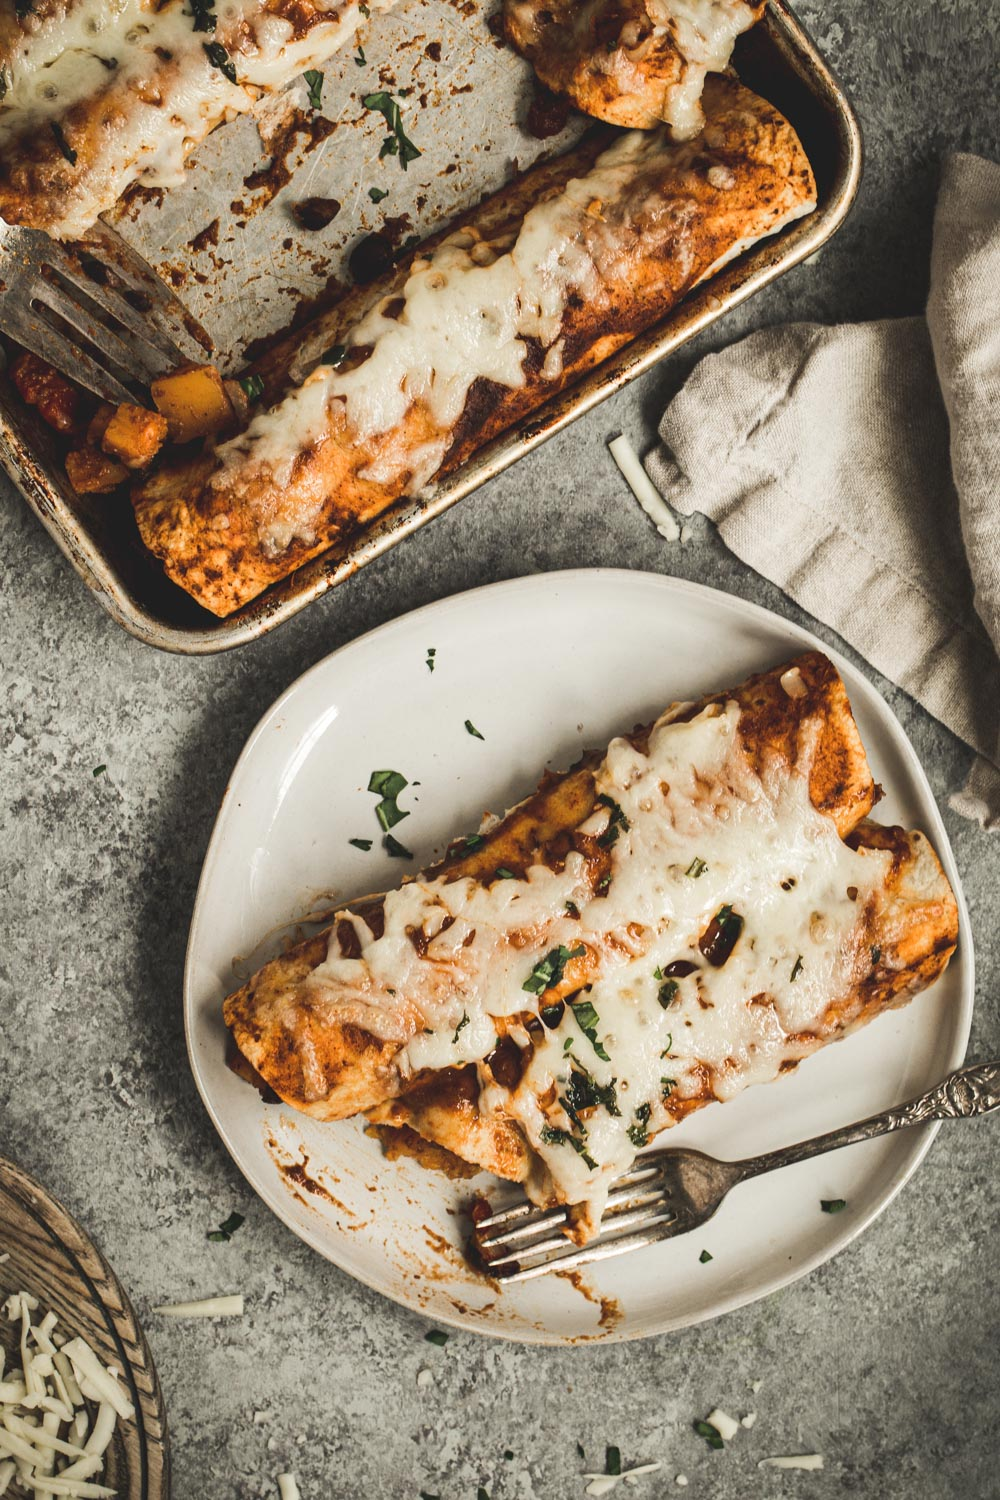 Two enchiladas on a white plate with a silver fork.